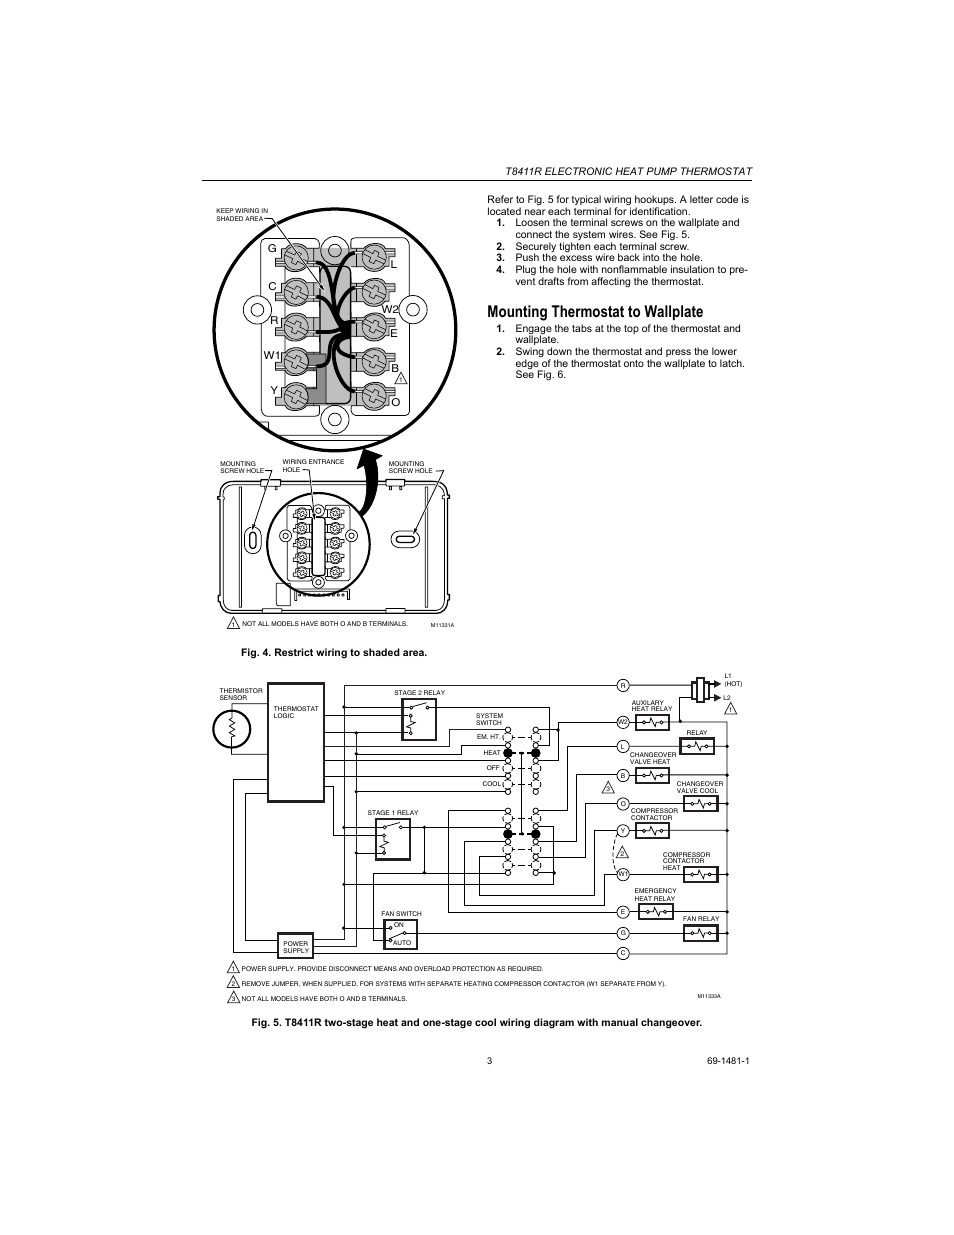 hight resolution of mounting thermostat to wallplate honeywell heat pump thermostat t8411r user manual page 3 6